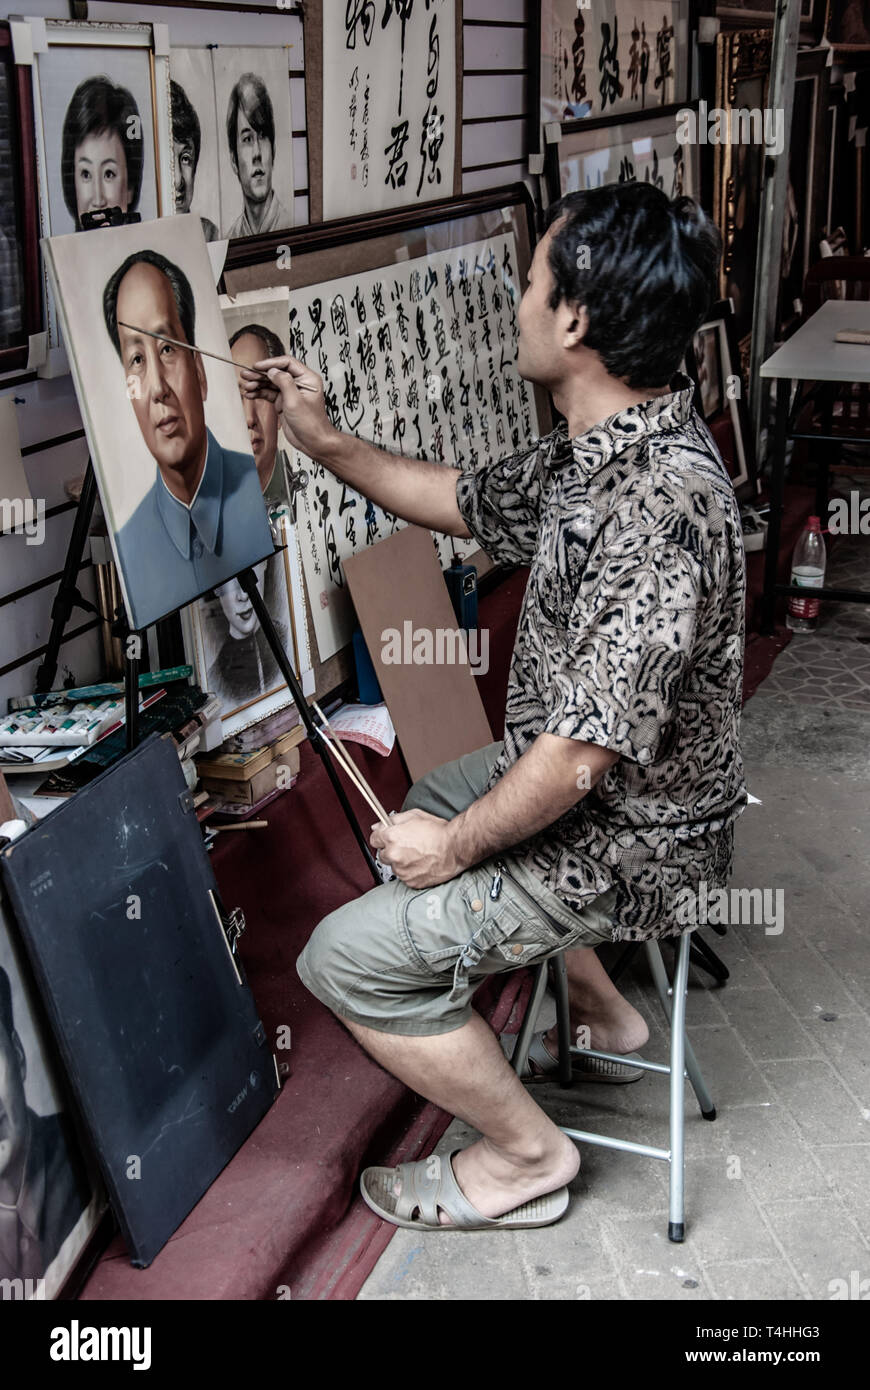 Artist paints vintage portrait of Mao. Chinese man of the Dafen Village at work. Residents specialize in copying and replicas of famous oil paintings. Stock Photo